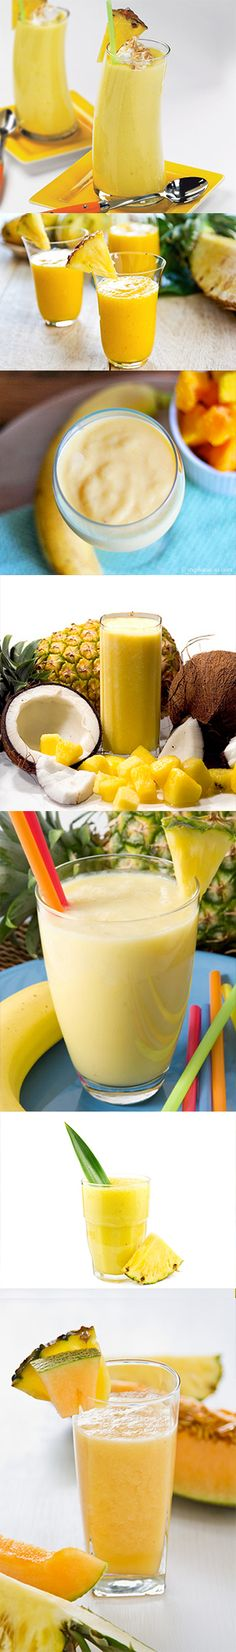 7 Awesome Healthy PINEAPPLE Smoothie Recipes http://www.amway.at/user/maurermarco